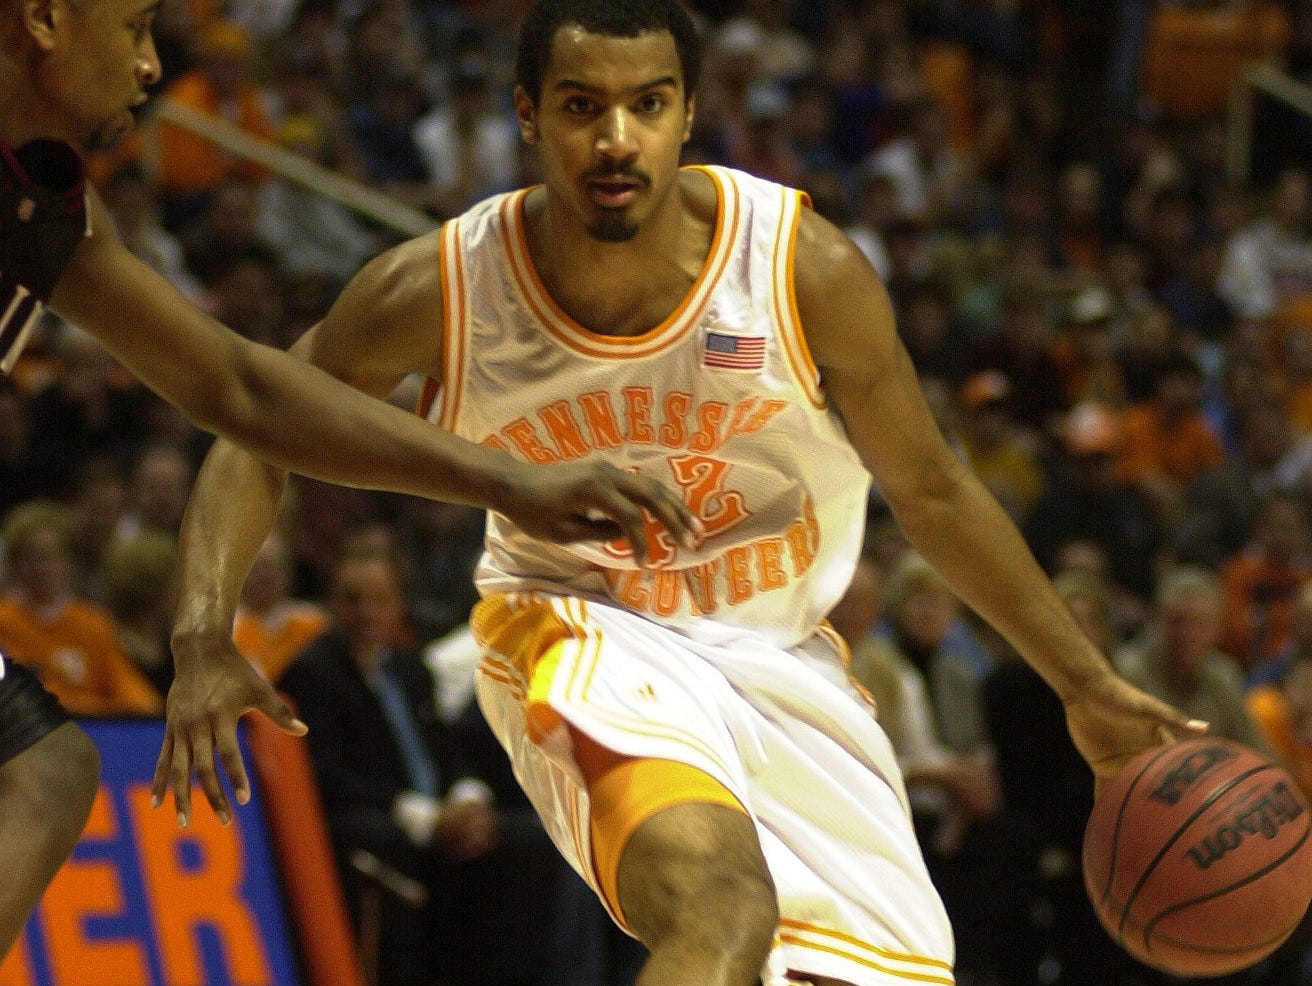 Tennessee guard Jon Higgins during a game against South Carolina in 2003.